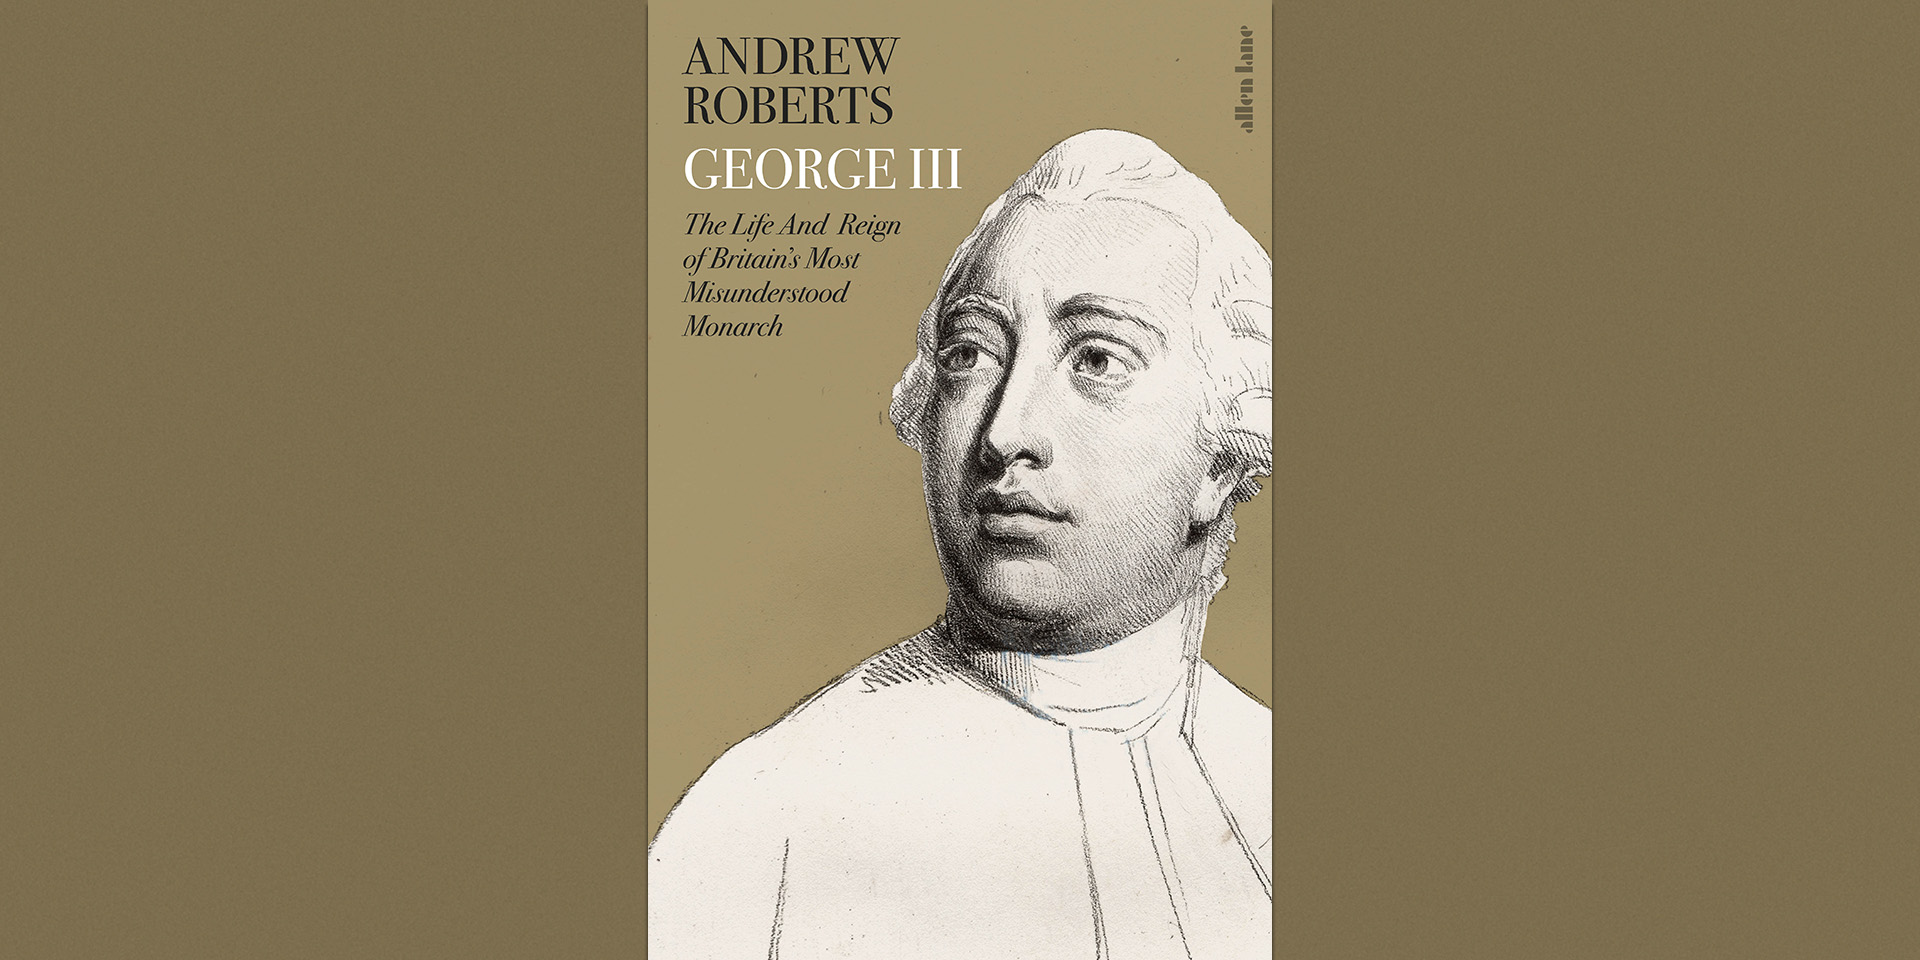 'George III: The Life and Reign of Britain's Most Misunderstood Monarch' book cover